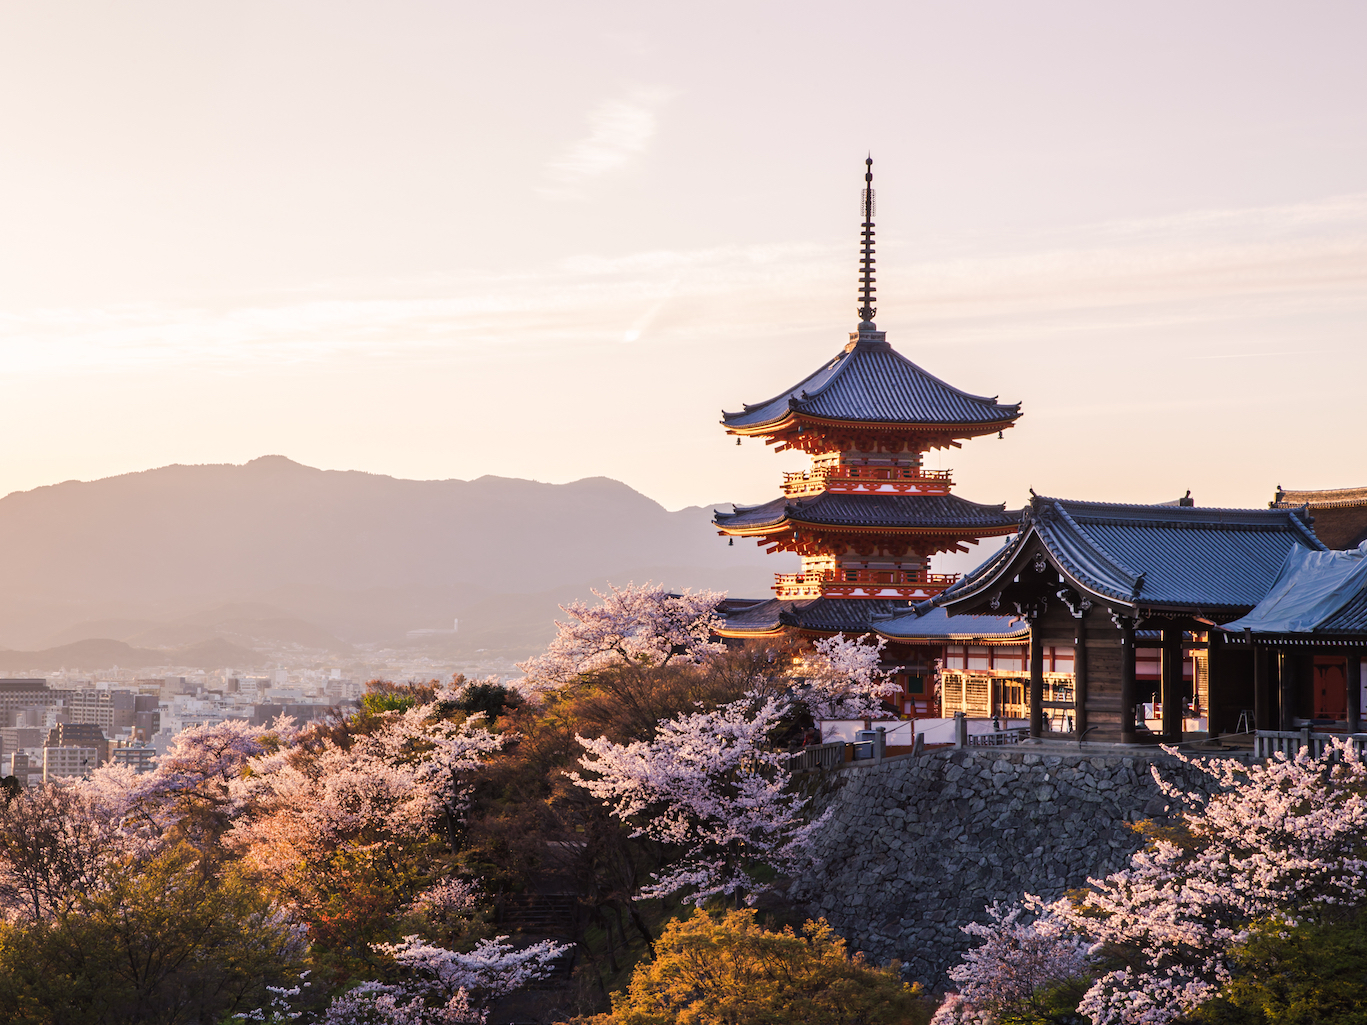 19-photos-that-show-why-kyoto-and-tokyo-were-voted-the-best-cities-in-the-world